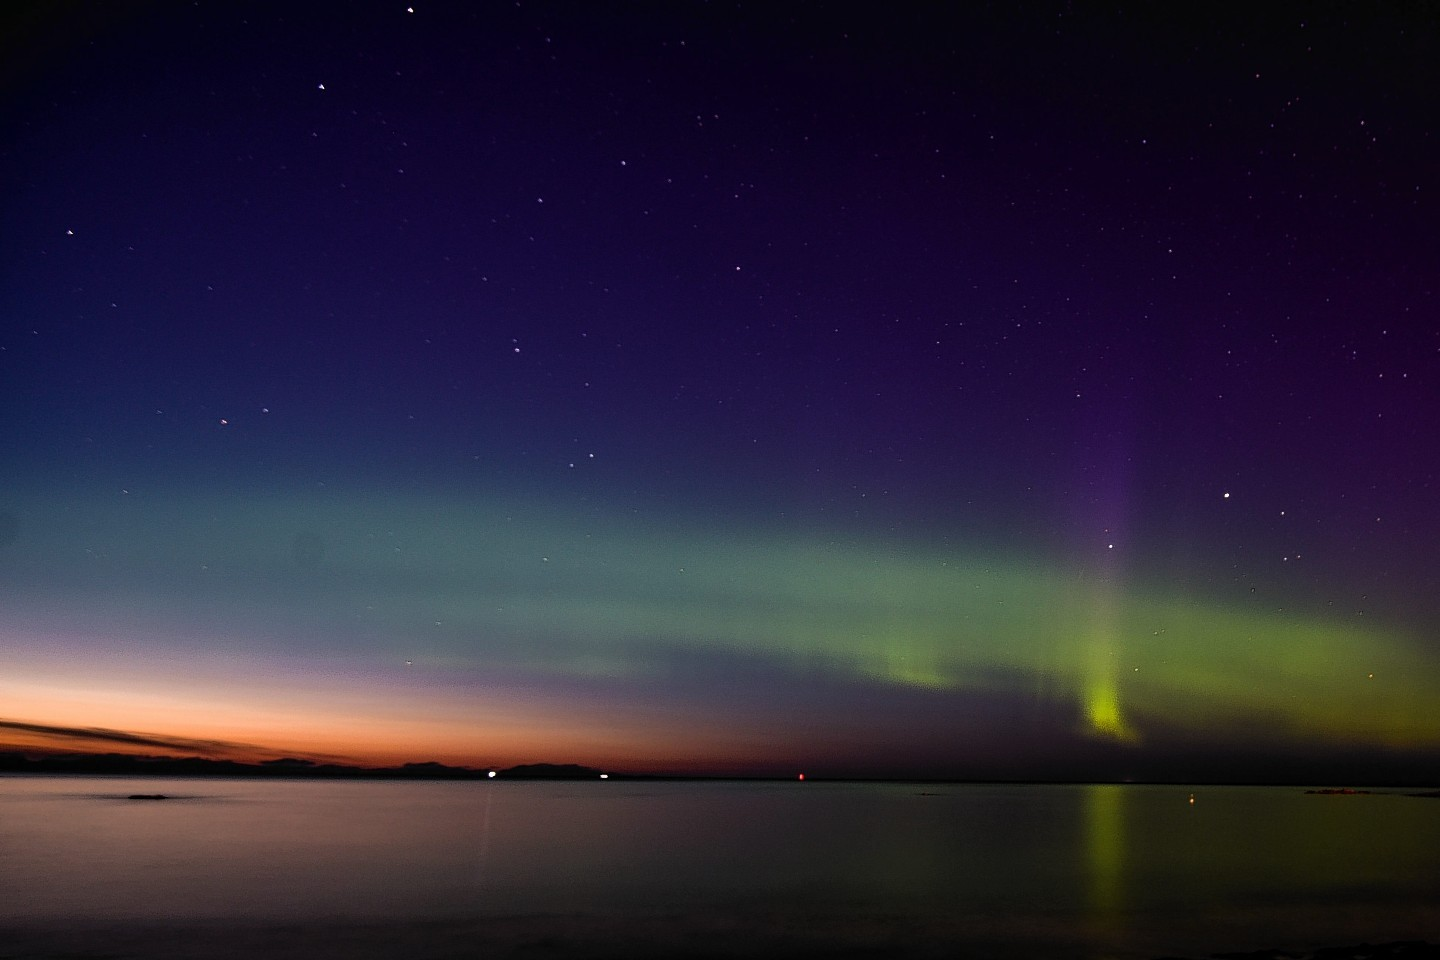 The Aurora Borealis, also known as the Northern Lights, are seen lighting up the sea by the West Beach in Lossiemouth, Moray